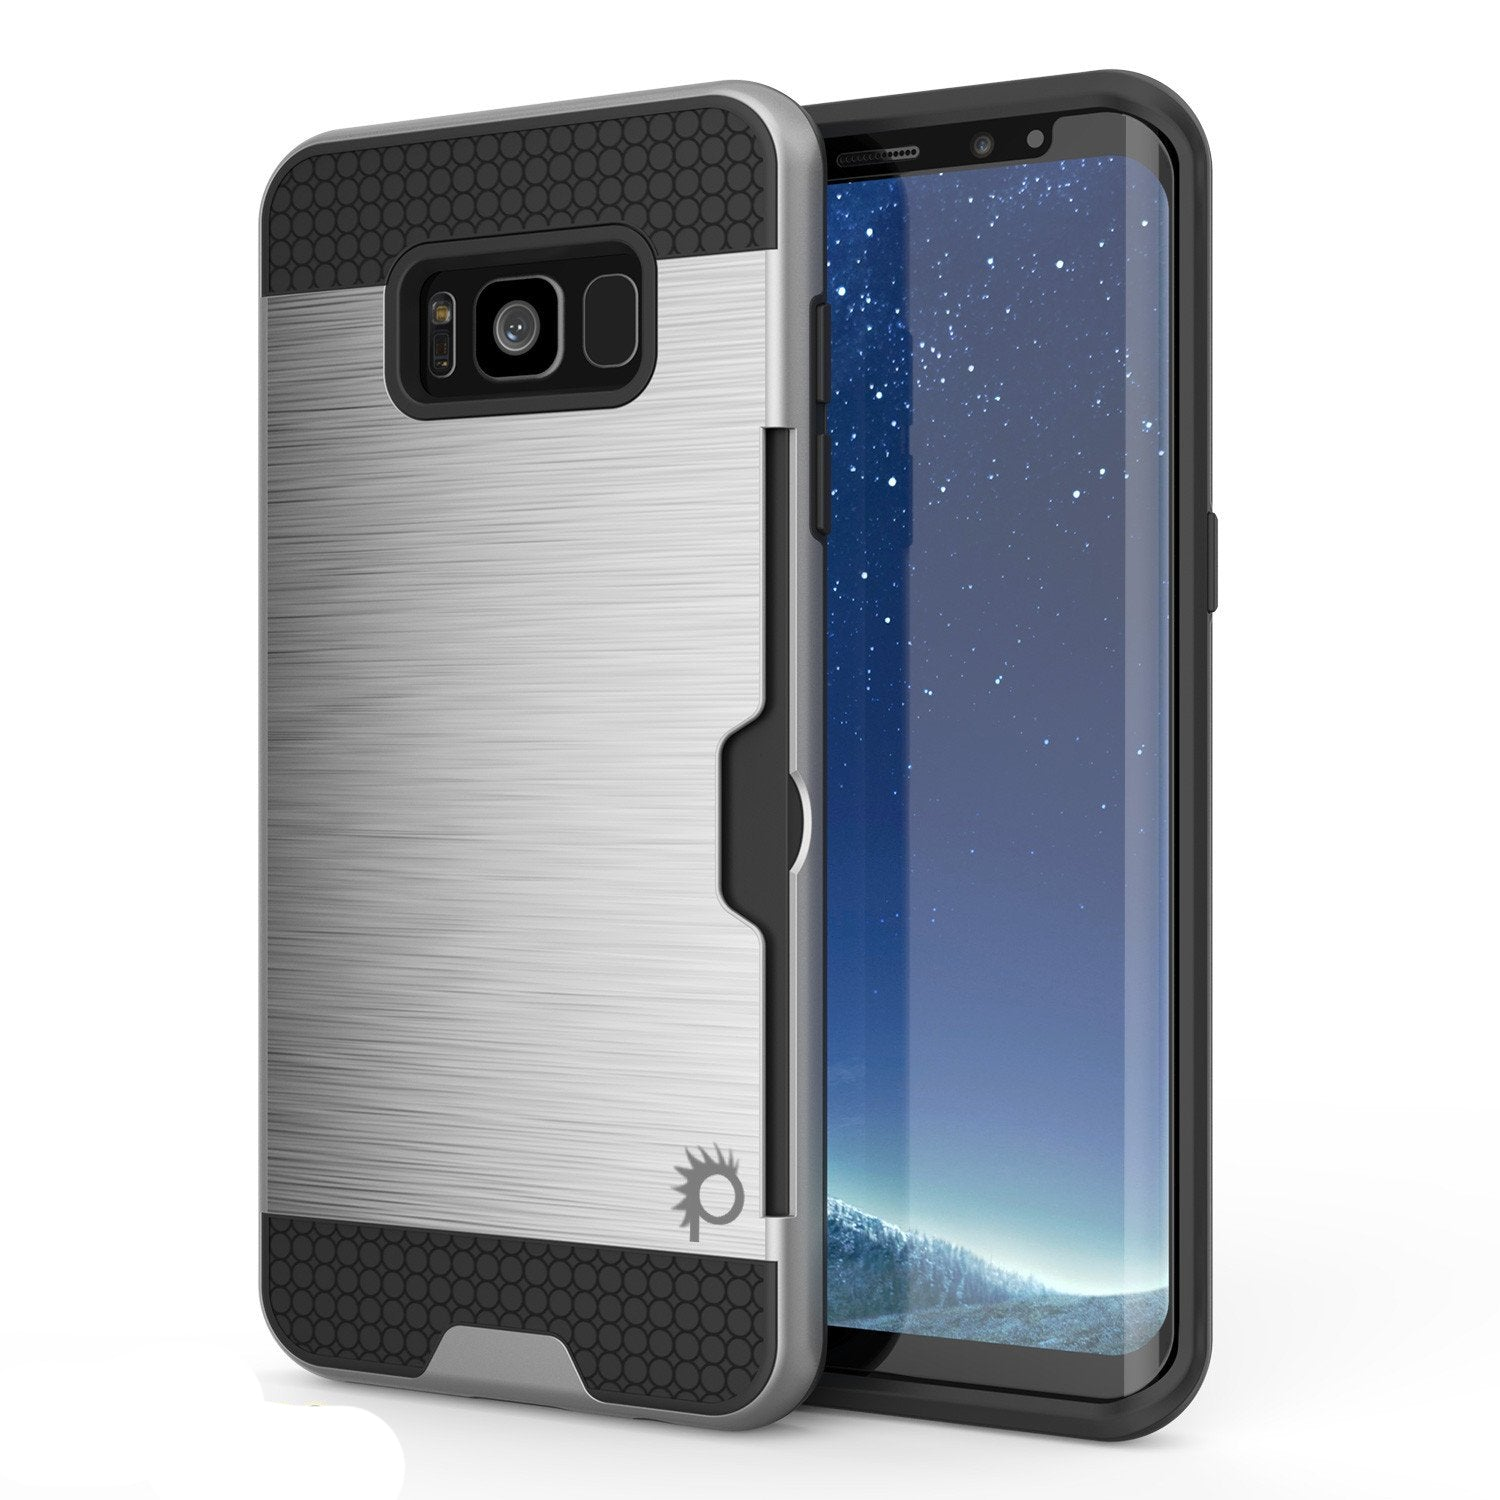 Galaxy S8 Plus Case, PUNKcase [SLOT Series] [Slim Fit] Dual-Layer Armor Cover w/Integrated Anti-Shock System, Credit Card Slot